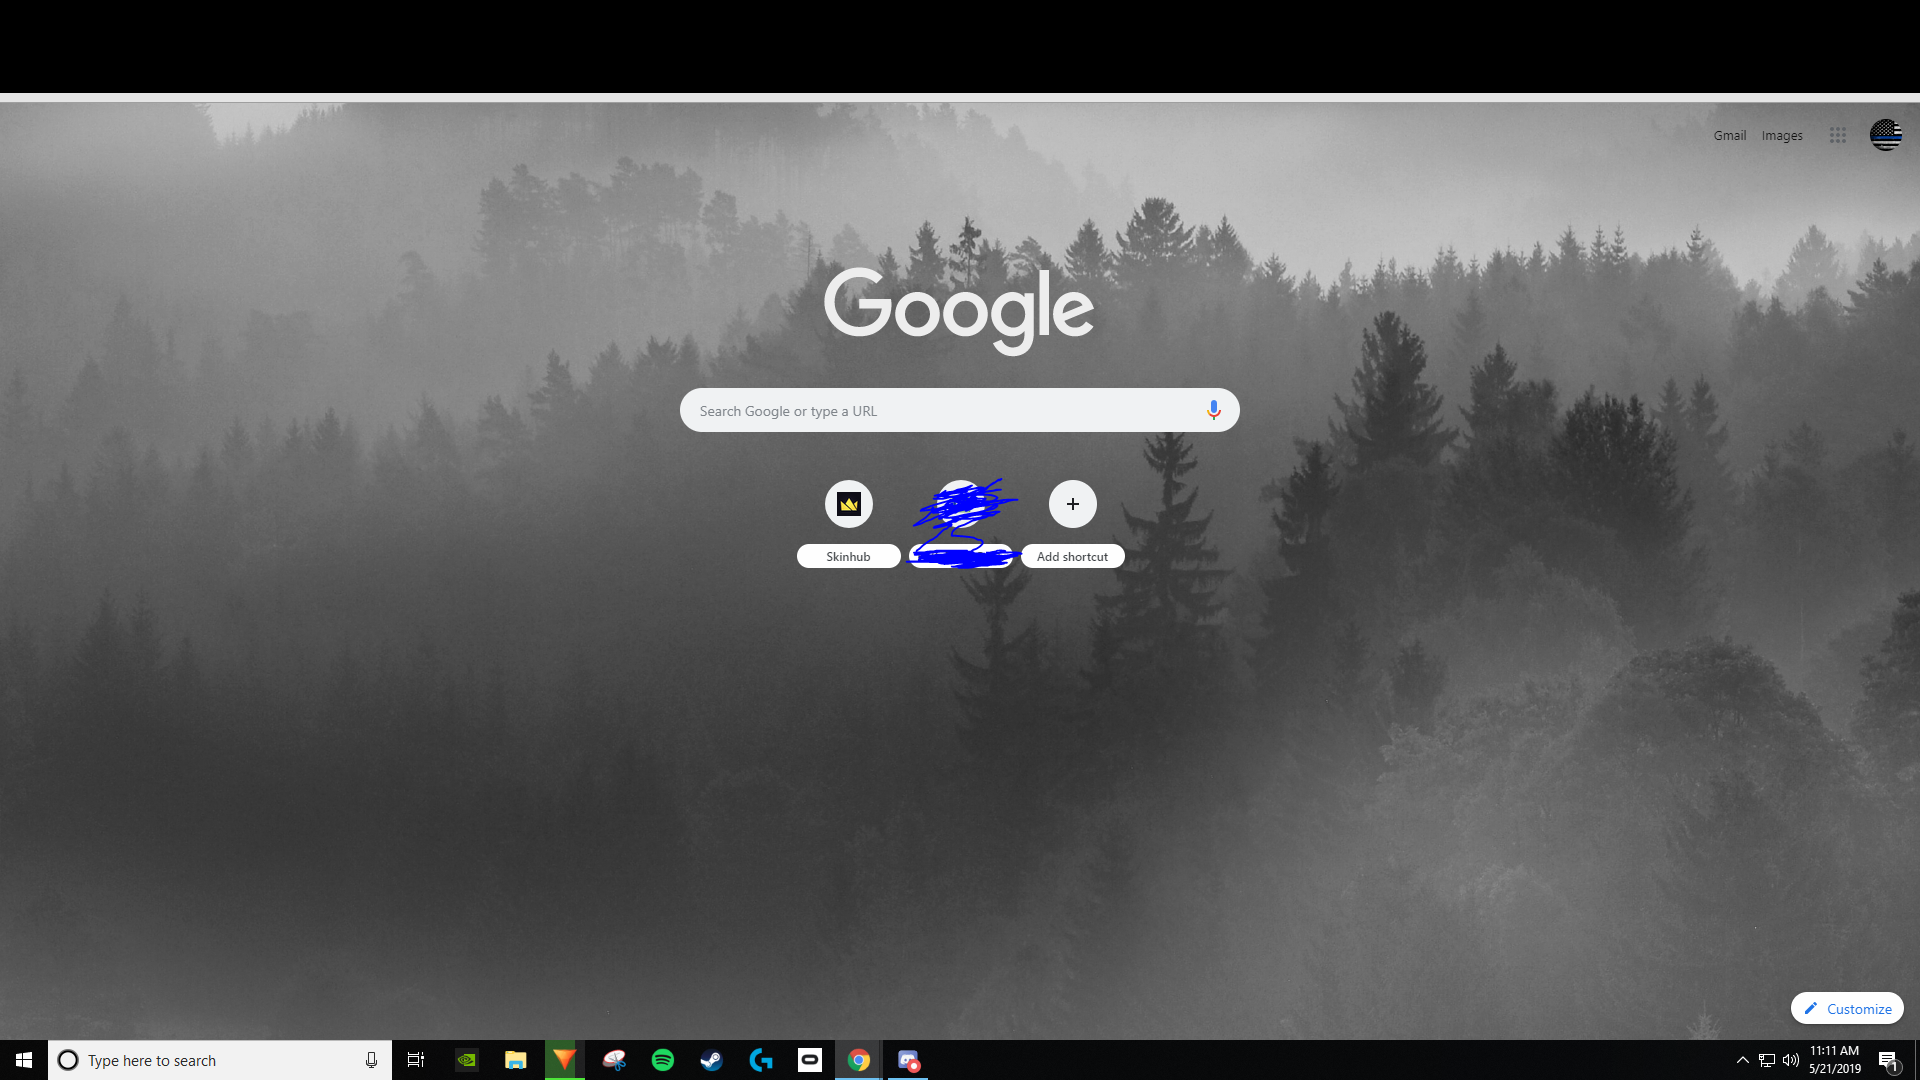 Bar At The Top Of Google Chrome Programs Apps And Websites